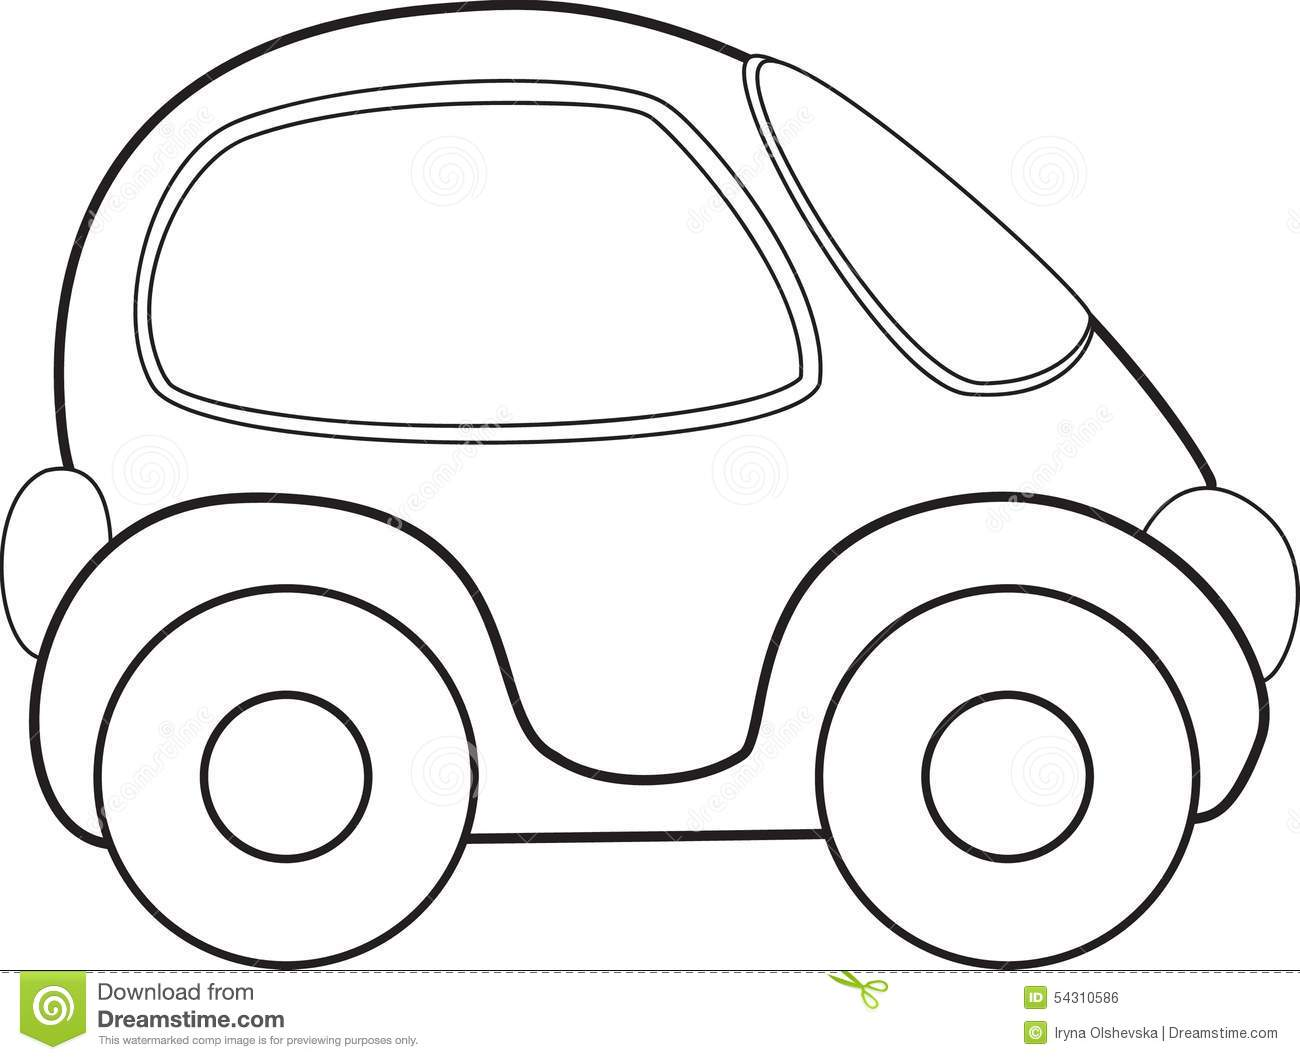 White Wedding Doves With Rings 312003 likewise Floral in addition How To Draw A 1970 Dodge Charger From The Fast And The Furious further Free Printable Disney Moana Coloring Pages Zb96n as well Sword. on cartoon car with people